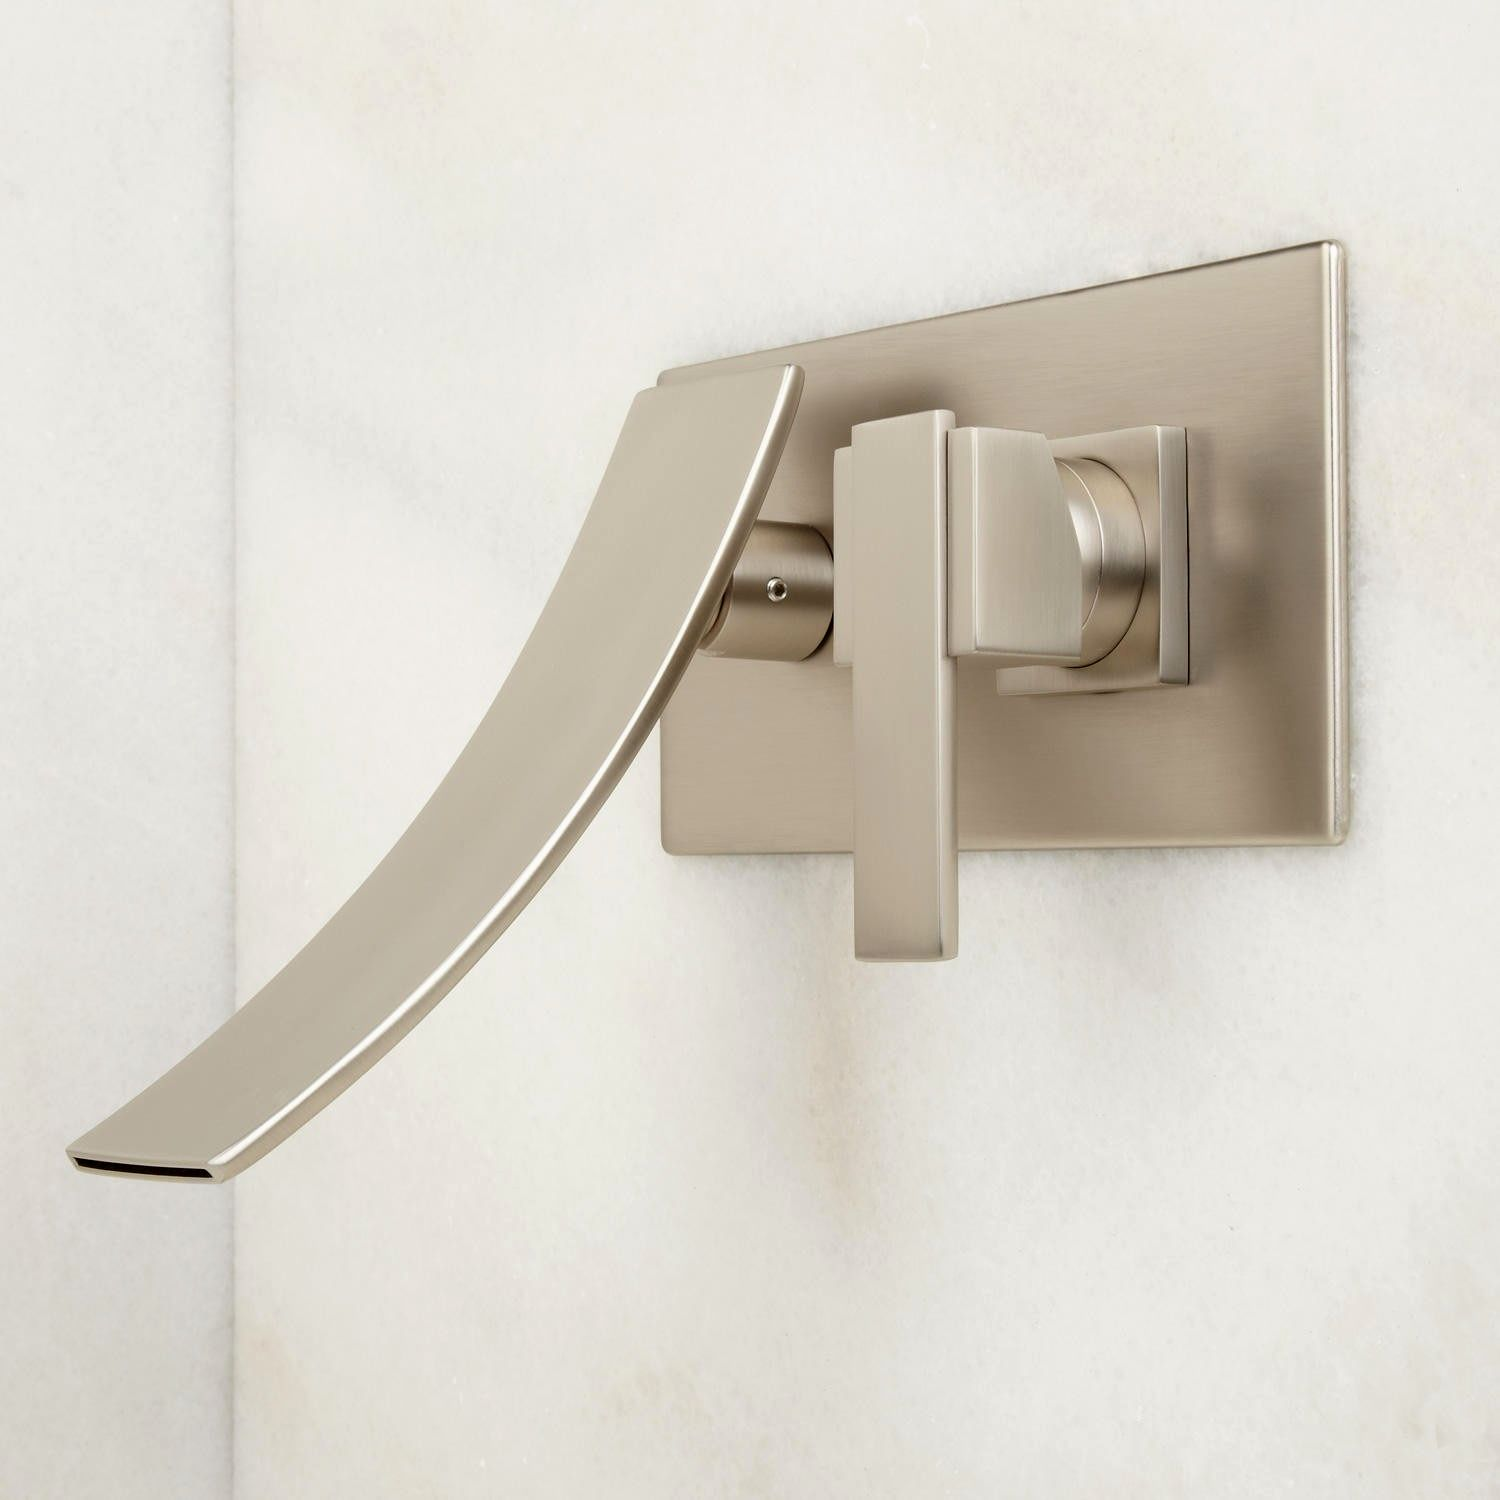 awesome bathroom faucets home depot gallery-Amazing Bathroom Faucets Home Depot Pattern